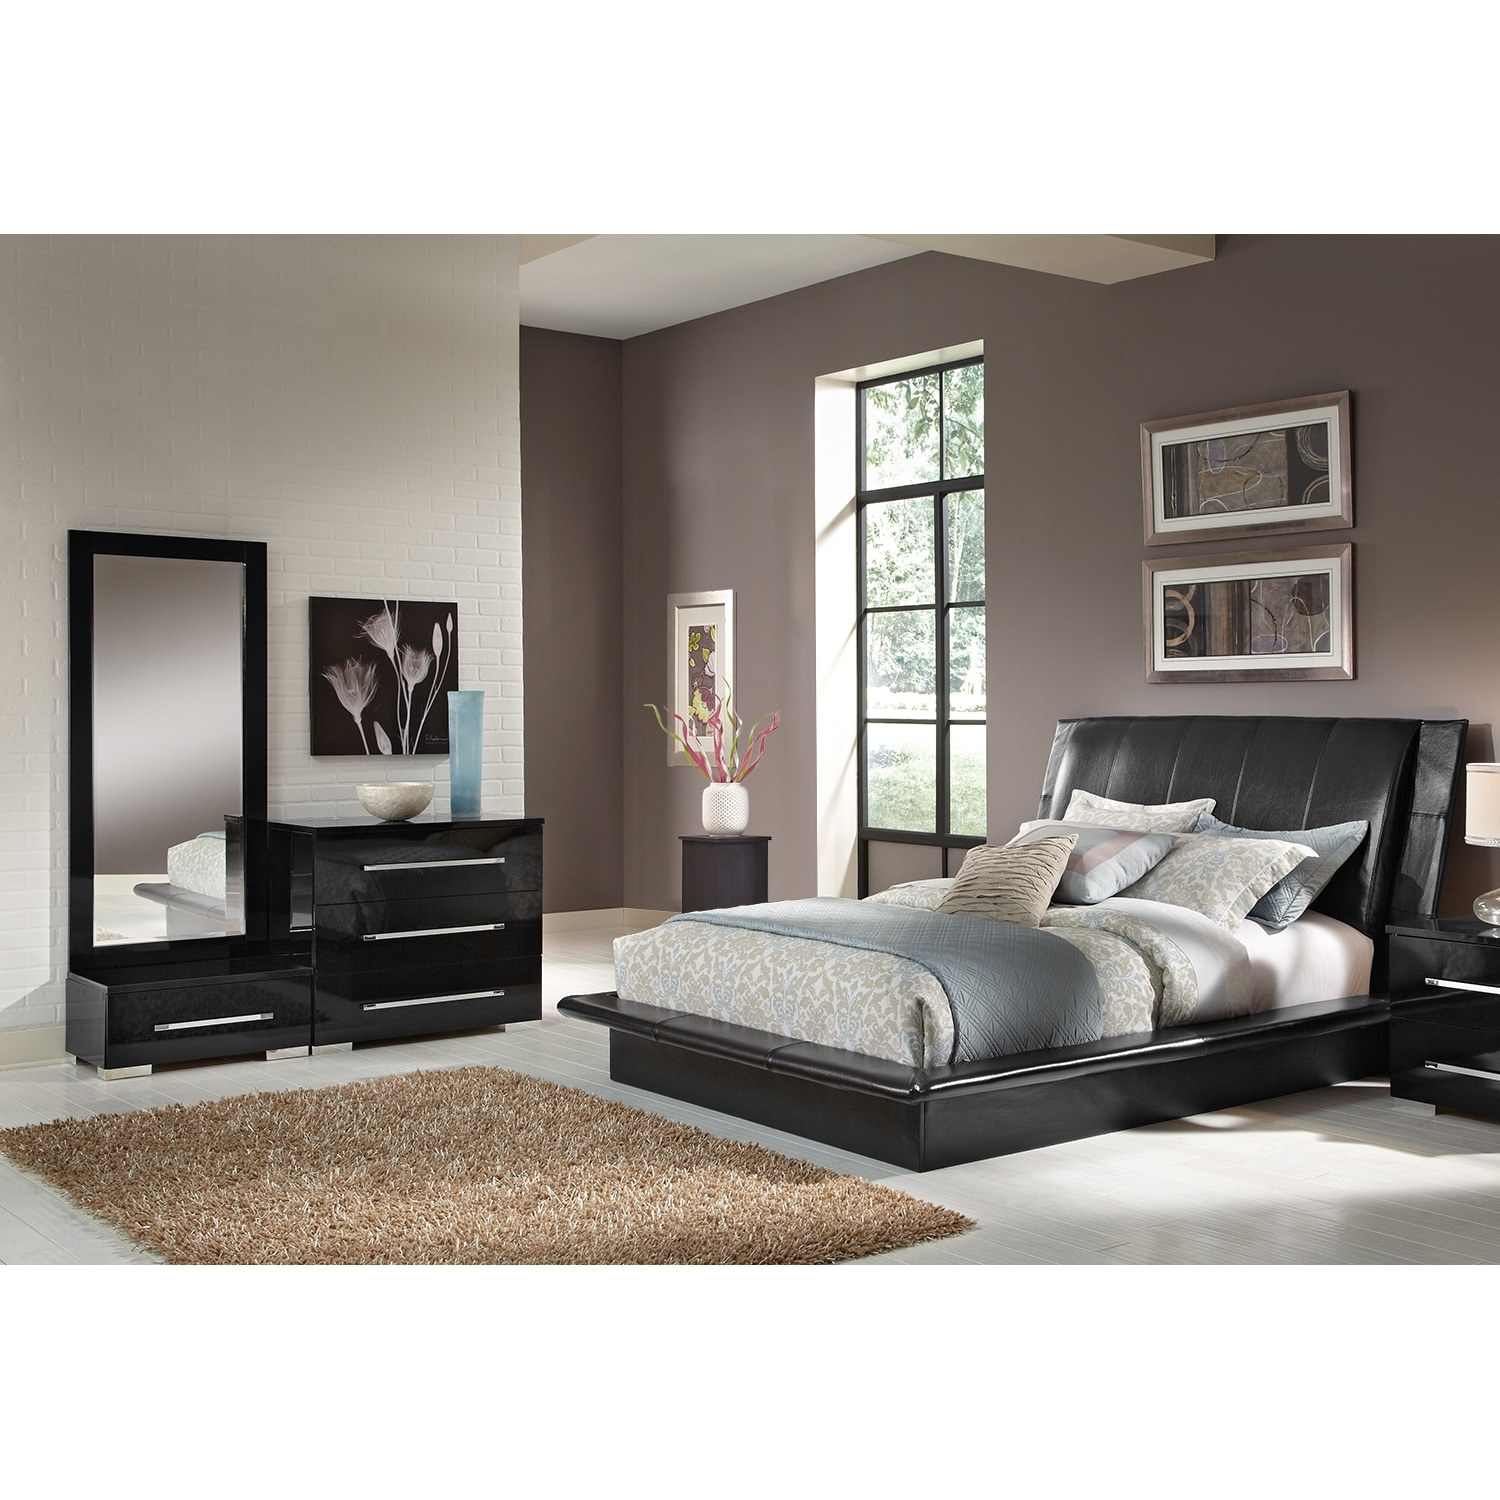 Bedroom Furniture - Dimora 5-Piece King Upholstered Bedroom Set - Black